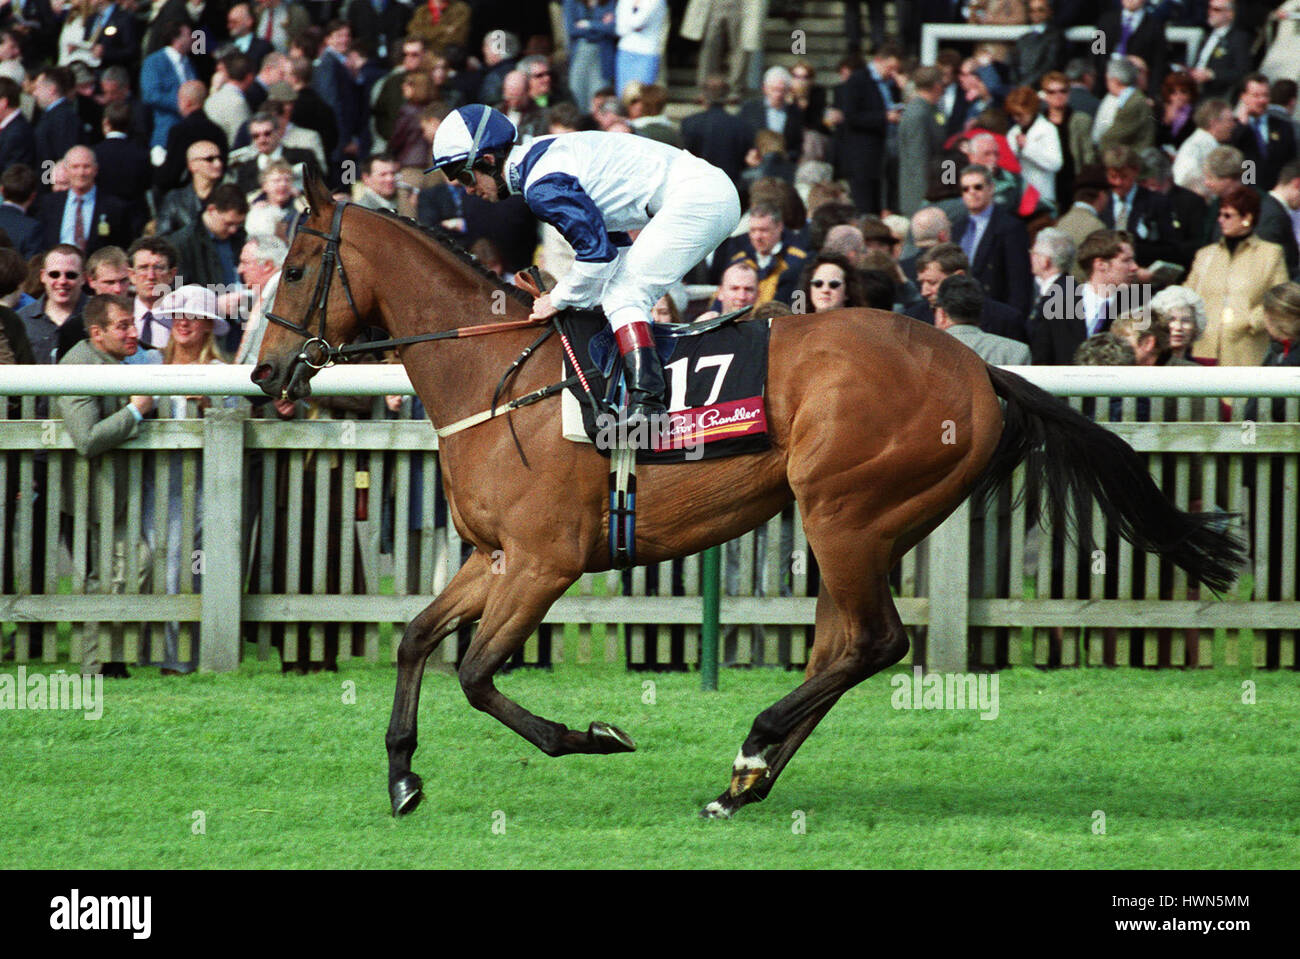 ROMANTIC MYTH RIDDEN BY F.NORTON NEWMARKET NEWMARKET RACECOURSE 05 May 2001 - Stock Image